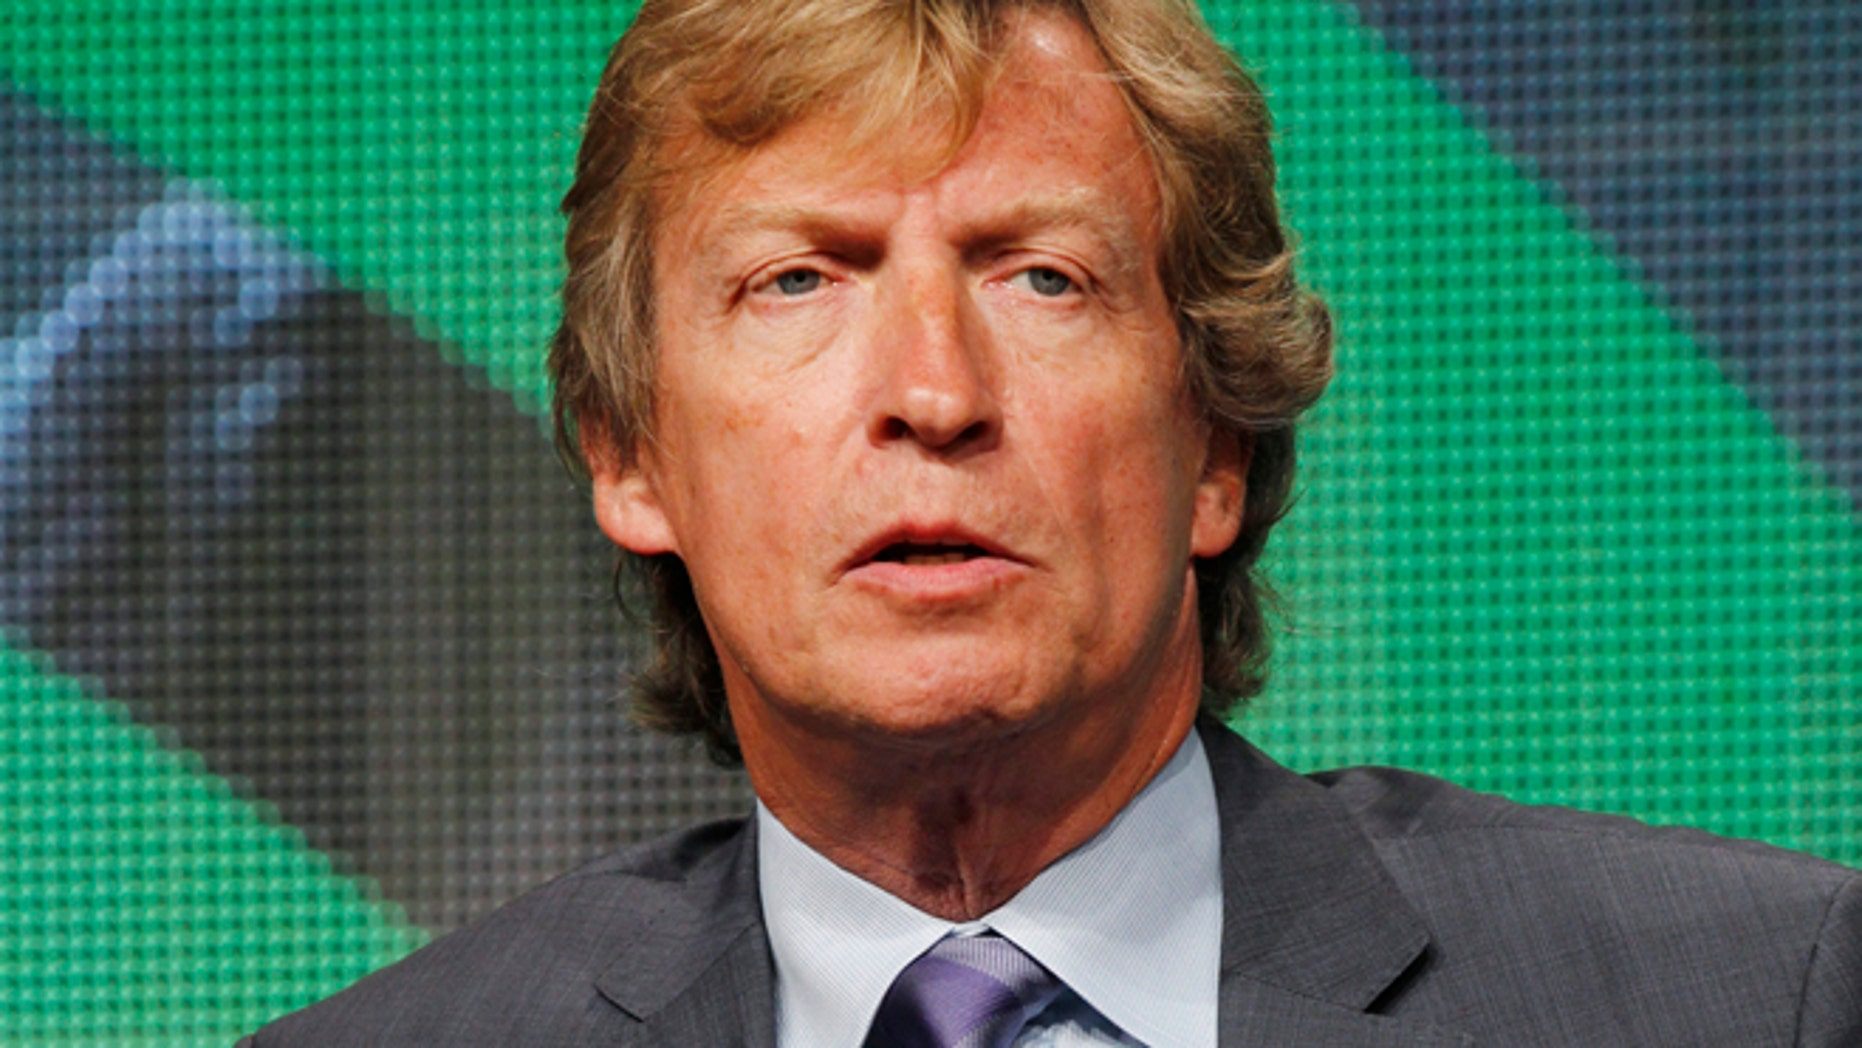 """Producer Nigel Lythgoe speaks during a panel discussion about the Ovation cable channel series """"A Chance to Dance"""" featuring dancers Michael Nunn and William Trevitt at the cable portion of the Television Critics Association Summer press tour in Beverly Hills, California August 1, 2012."""